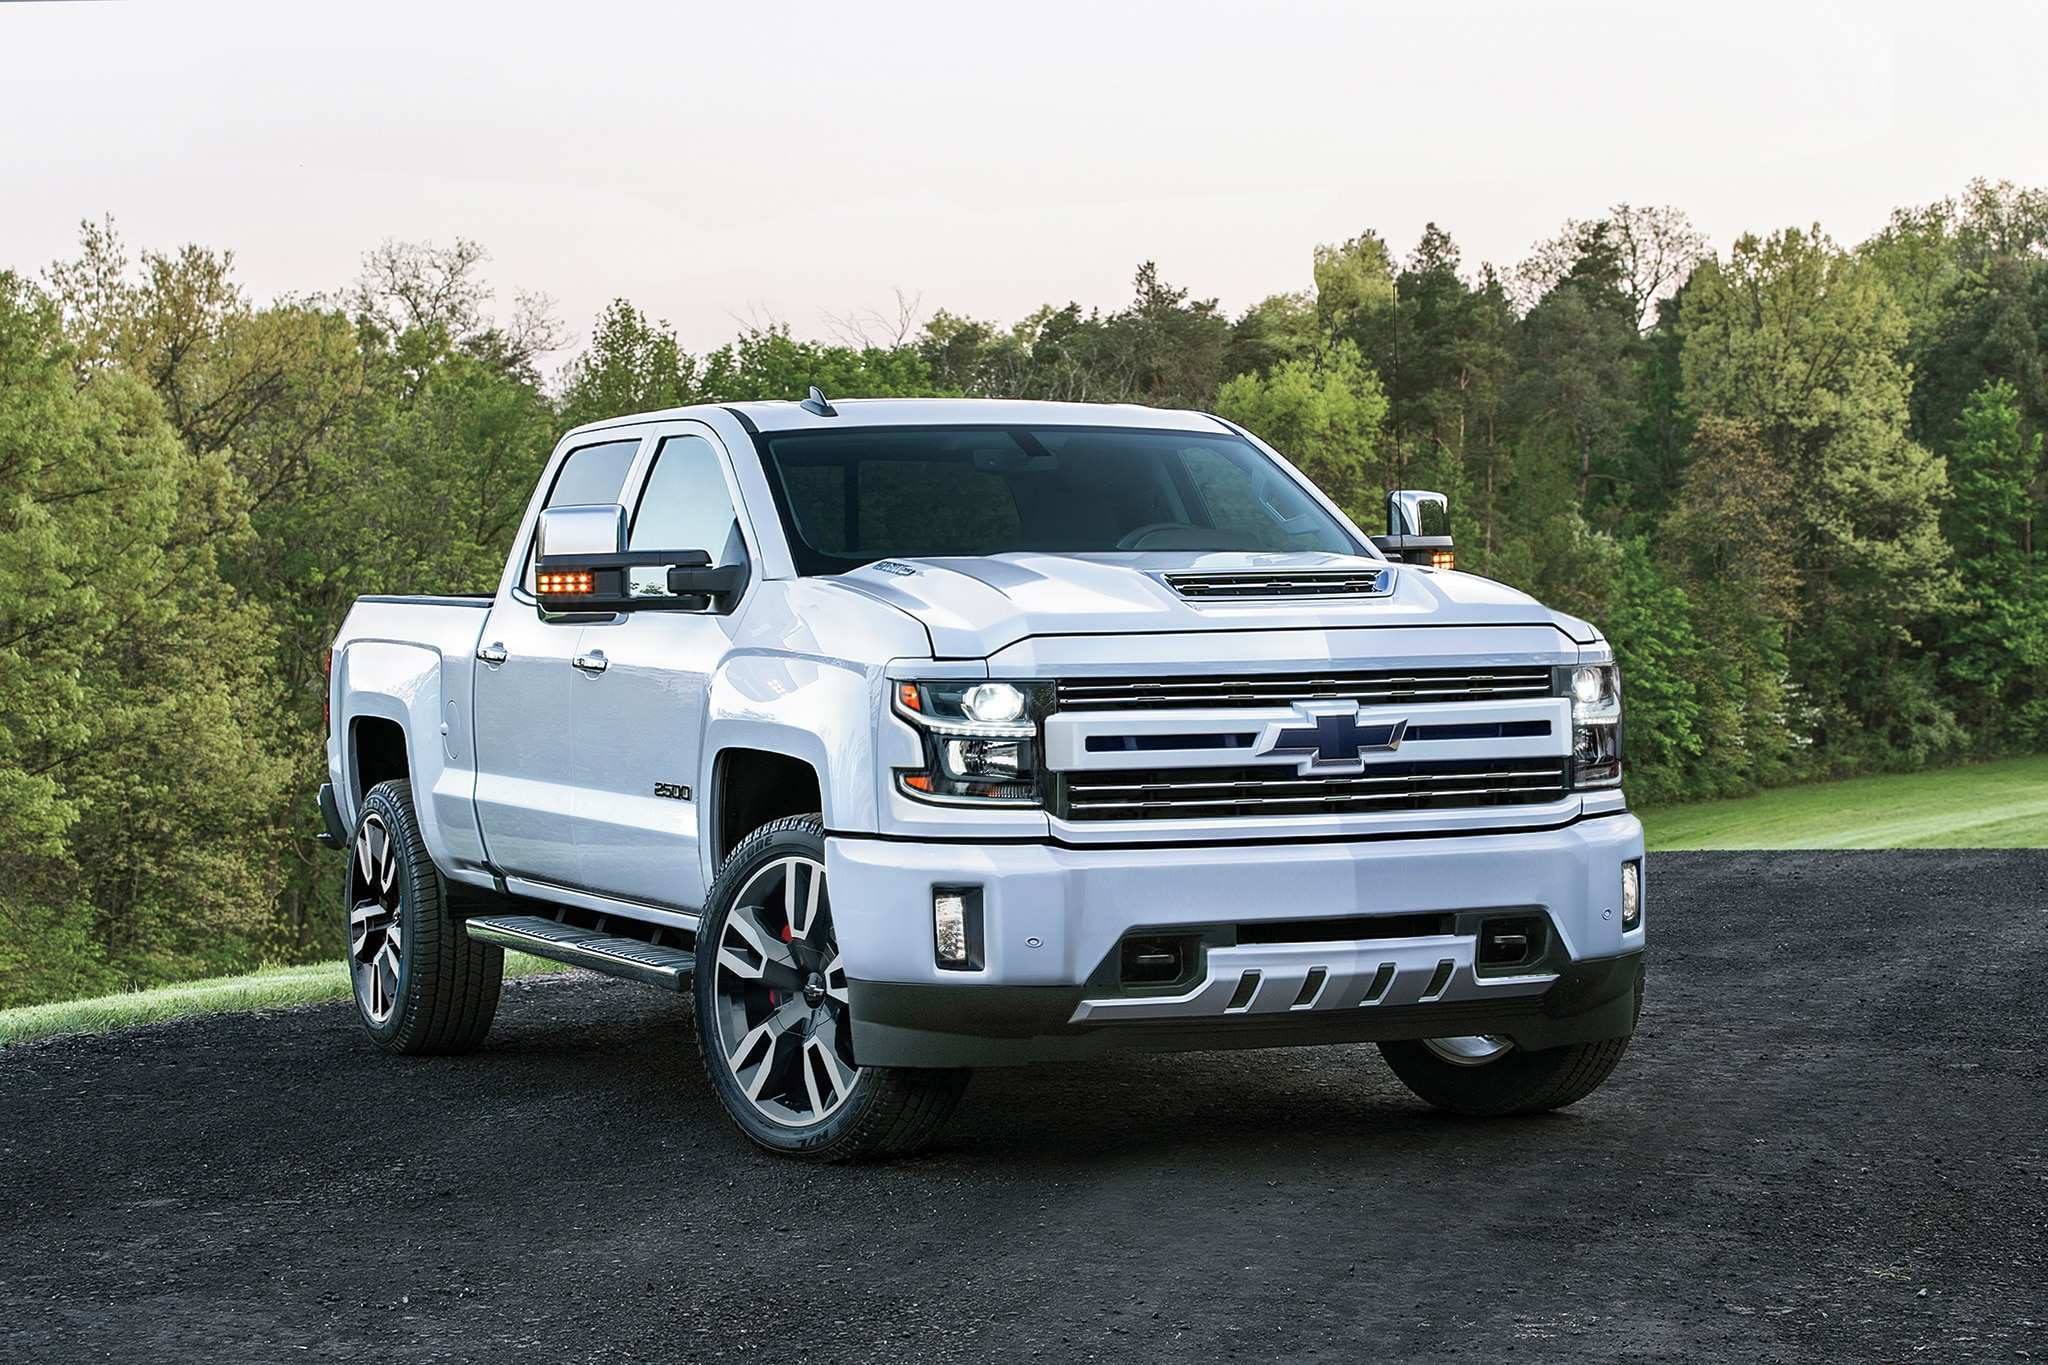 71 Concept of 2019 Chevrolet Hd Trucks Redesign with 2019 Chevrolet Hd Trucks